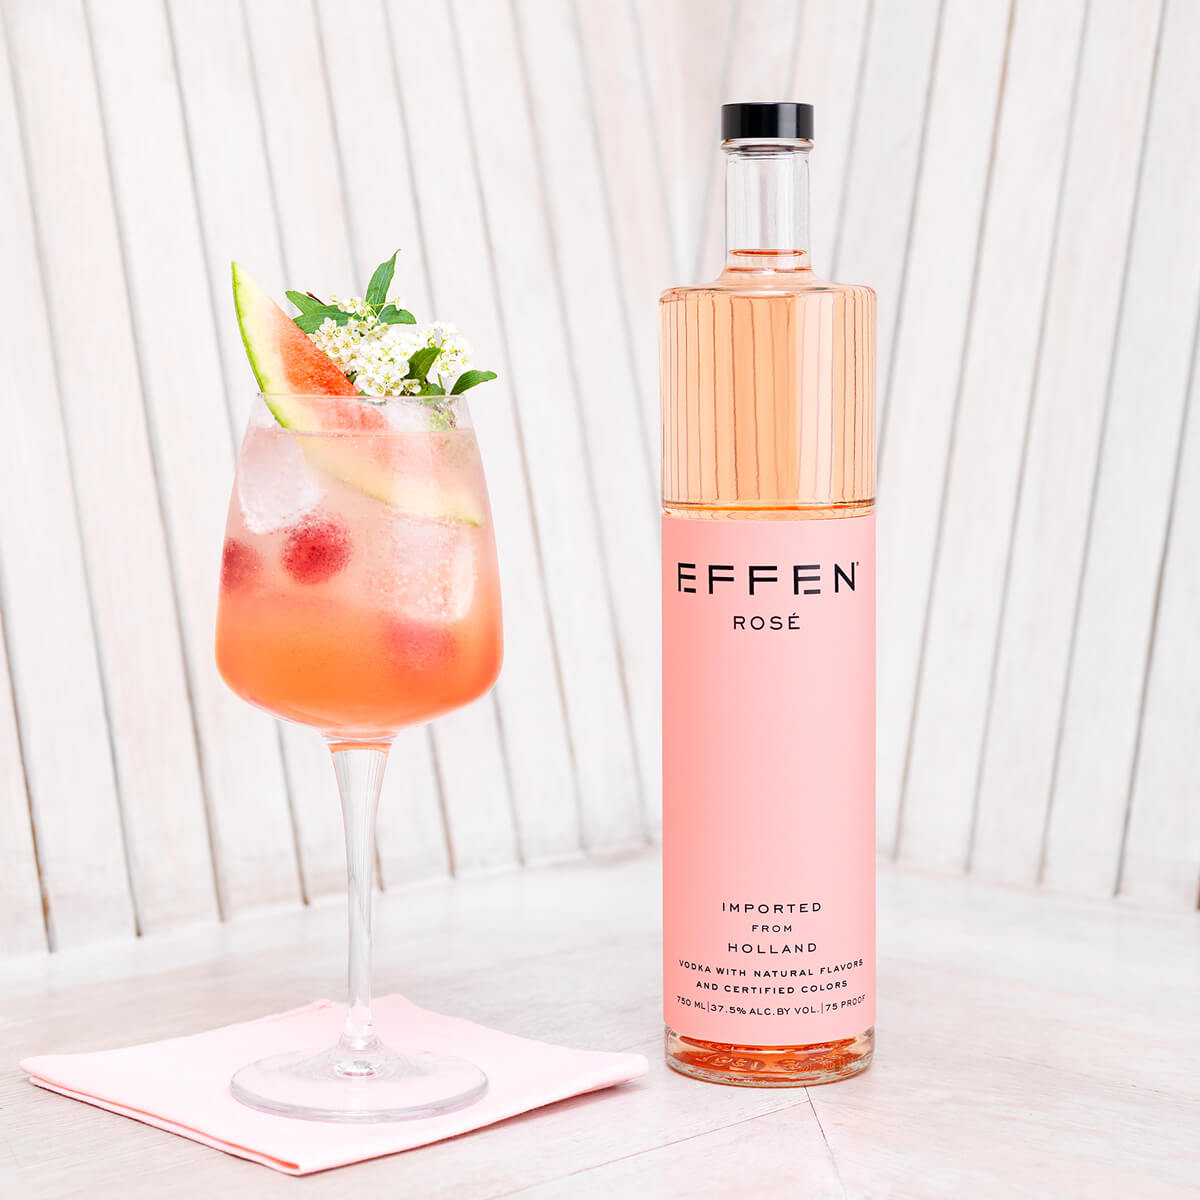 EFFEN rose vodka makes your life more colorful.